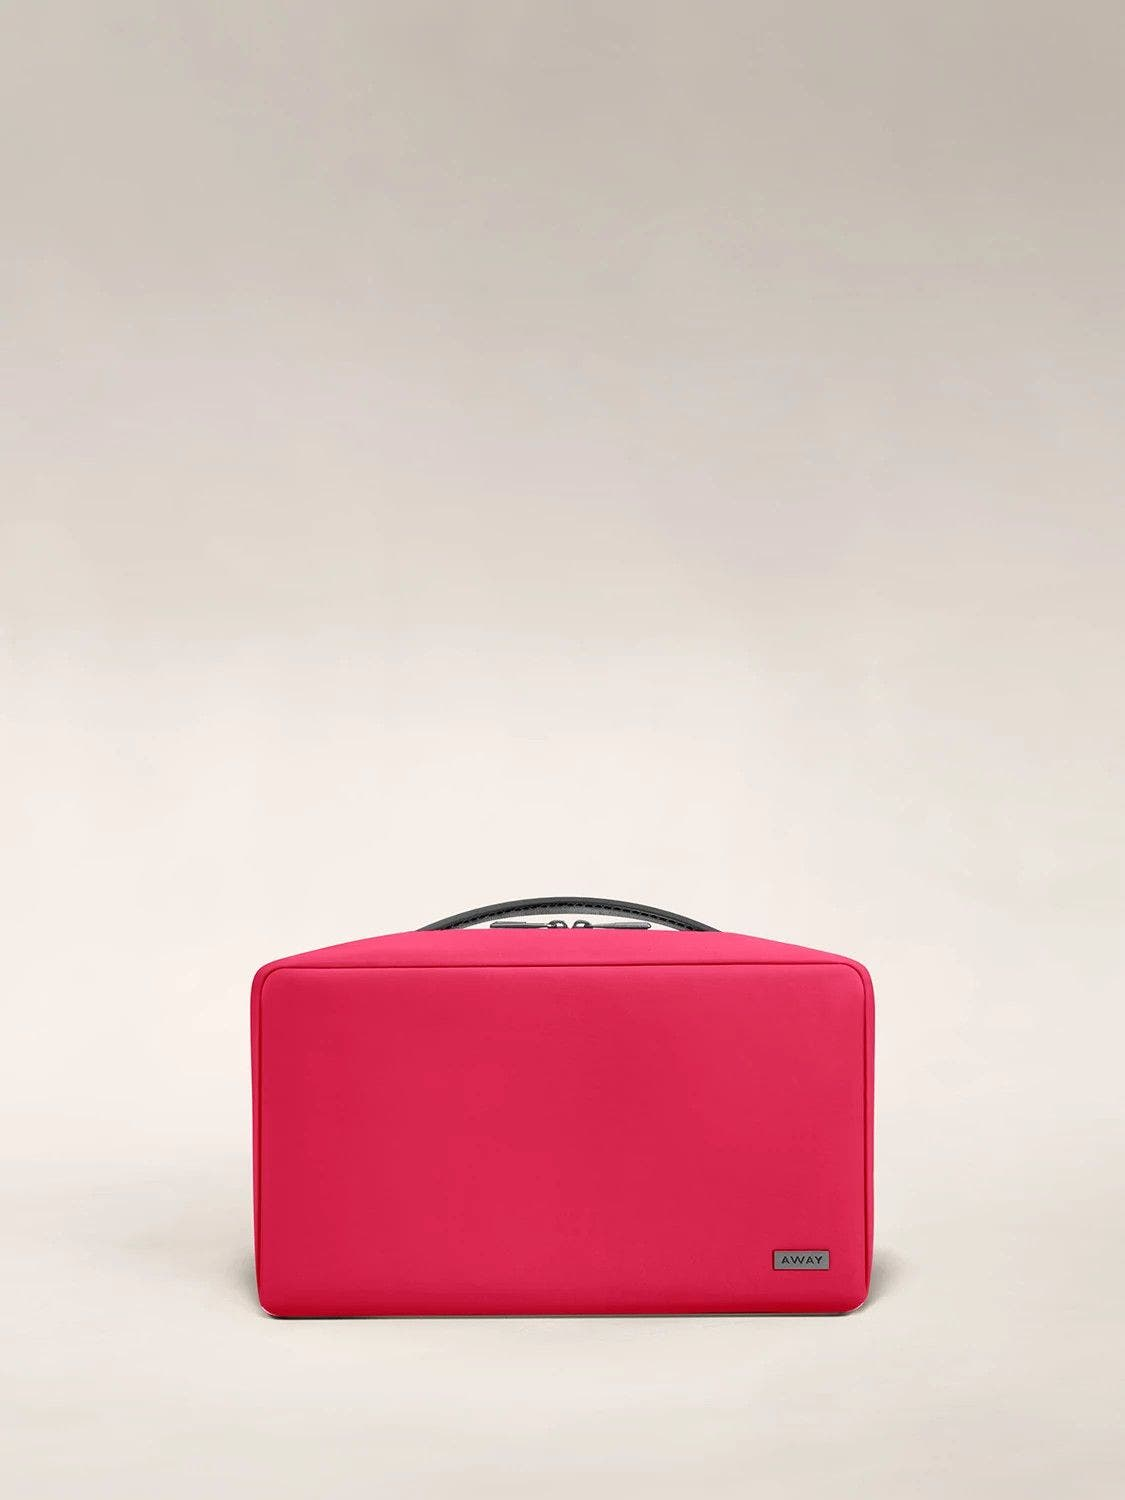 Large travel toiletry bag in the color electric magenta.